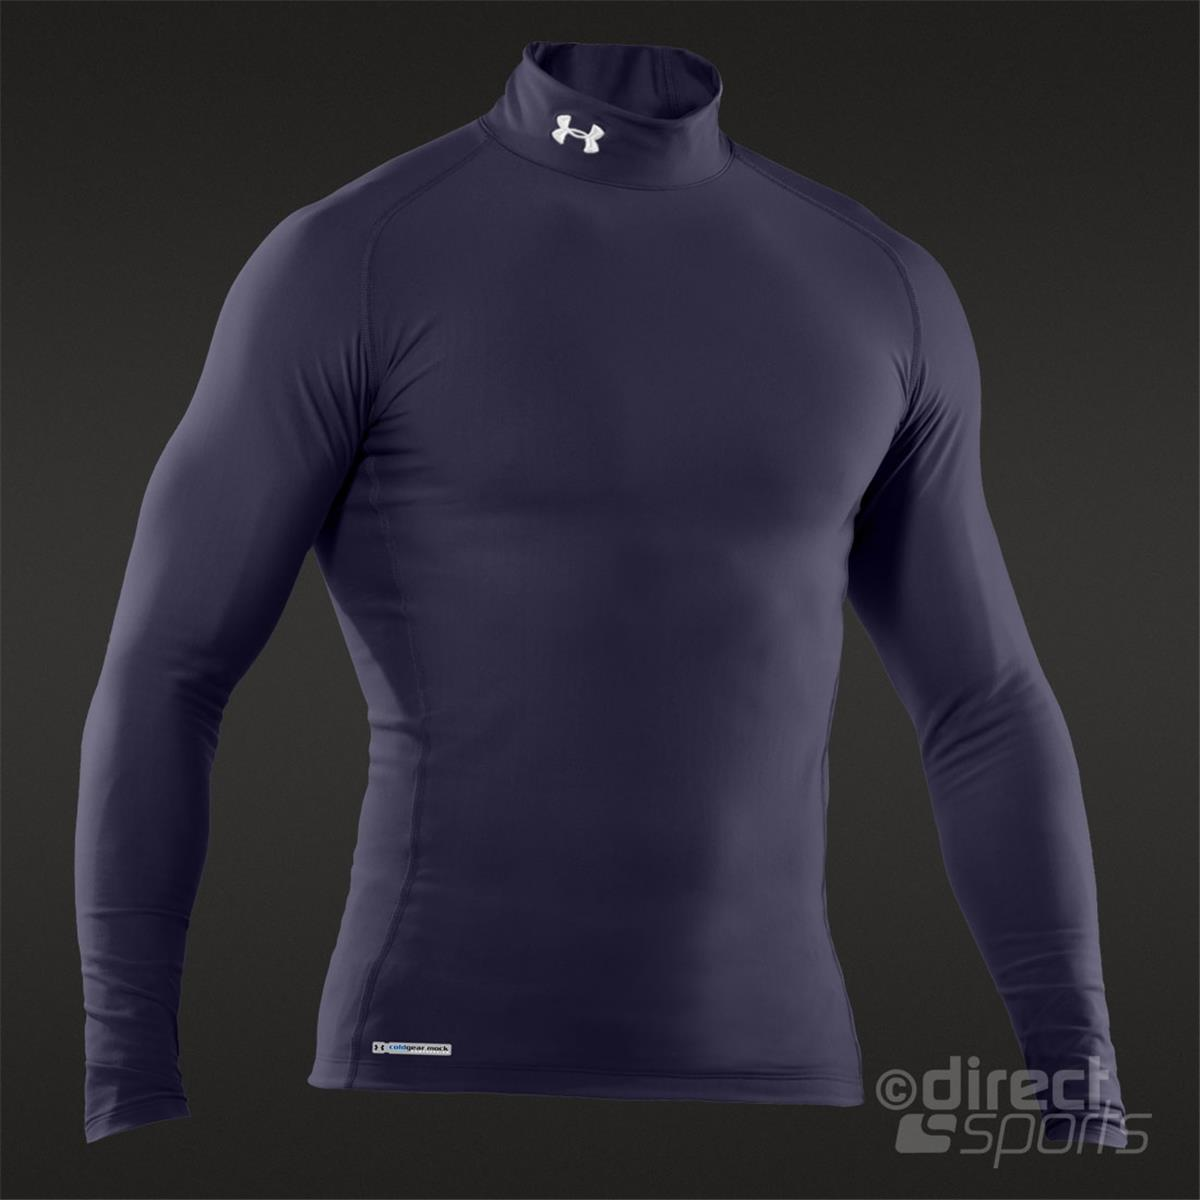 1352dcd65 under armour mens coldgear armour compression mock neck long sleeve shirt